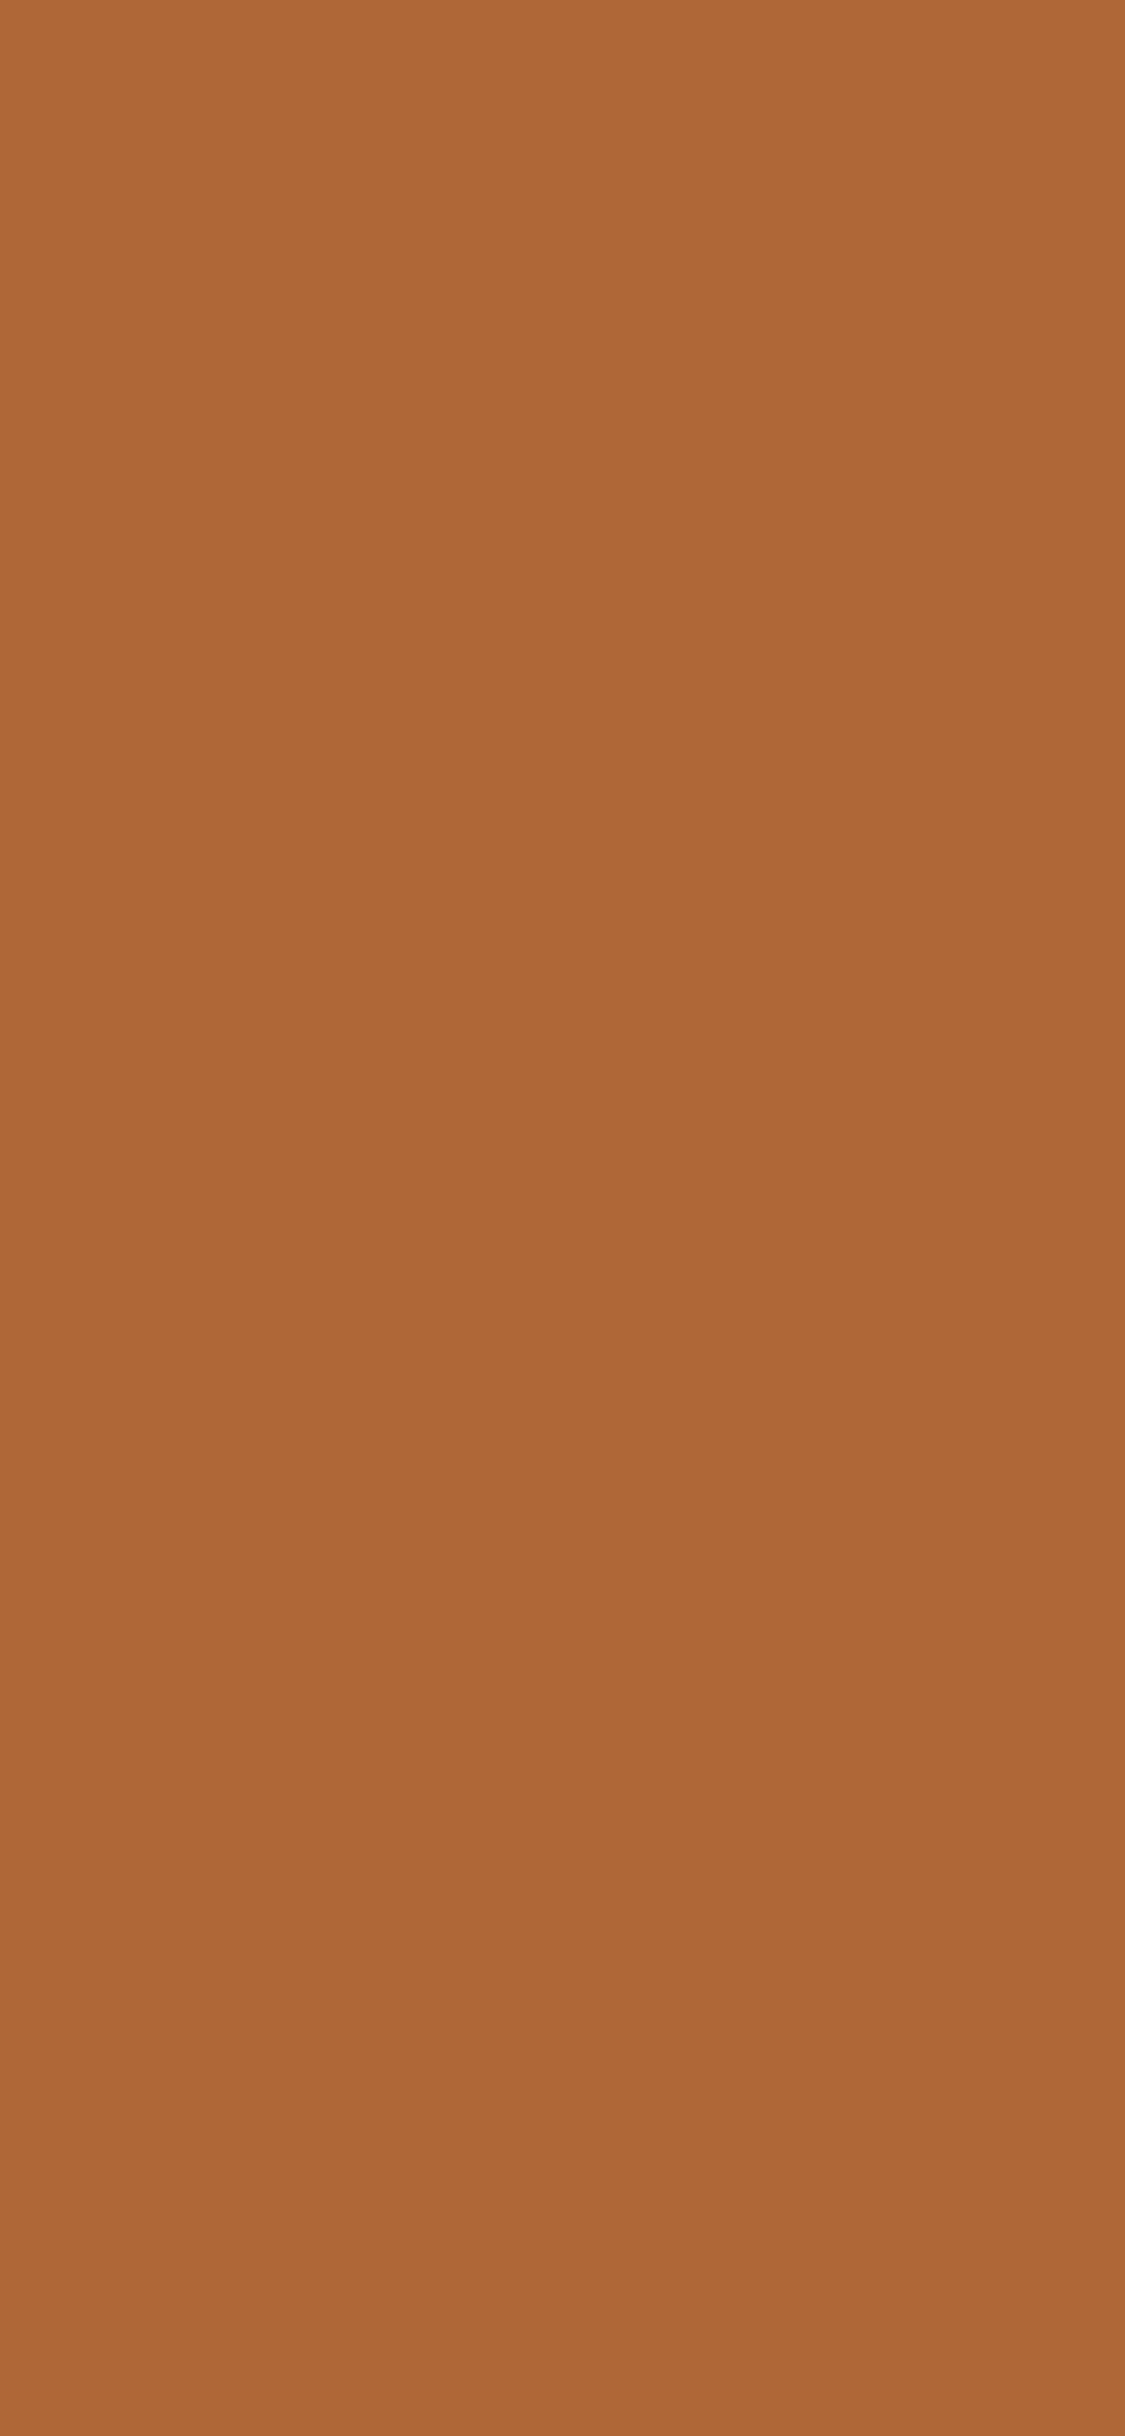 1125x2436 Windsor Tan Solid Color Background